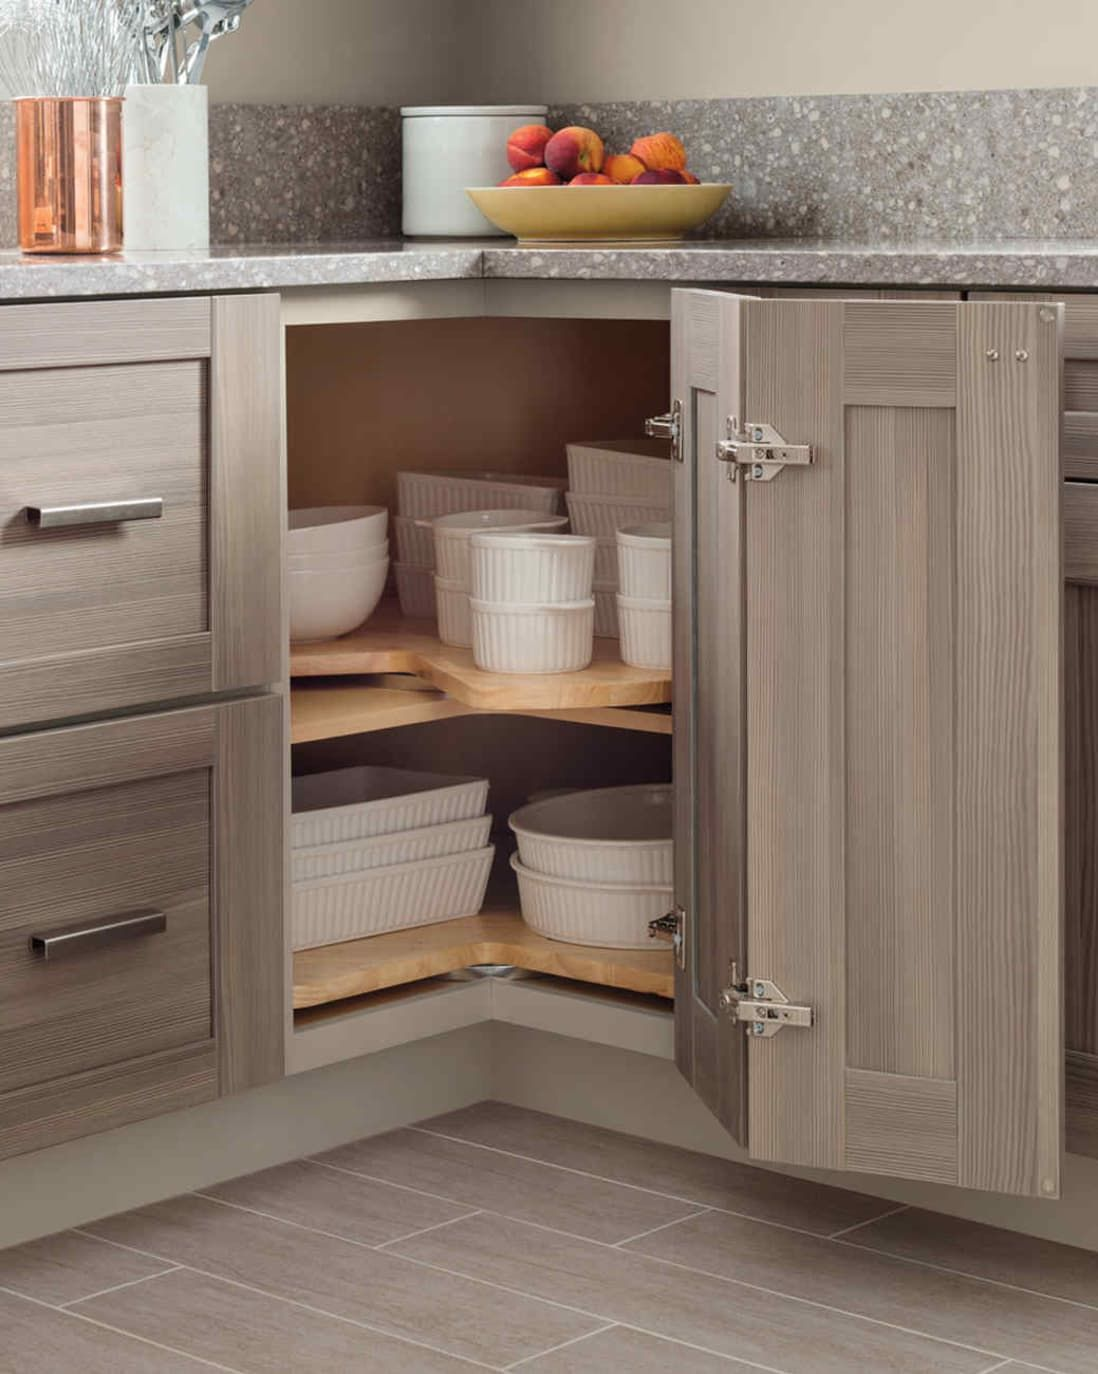 10 kitchens that solve the awkward corner conundrum in 2020 with images corner kitchen on organizing kitchen cabinets zones id=22764